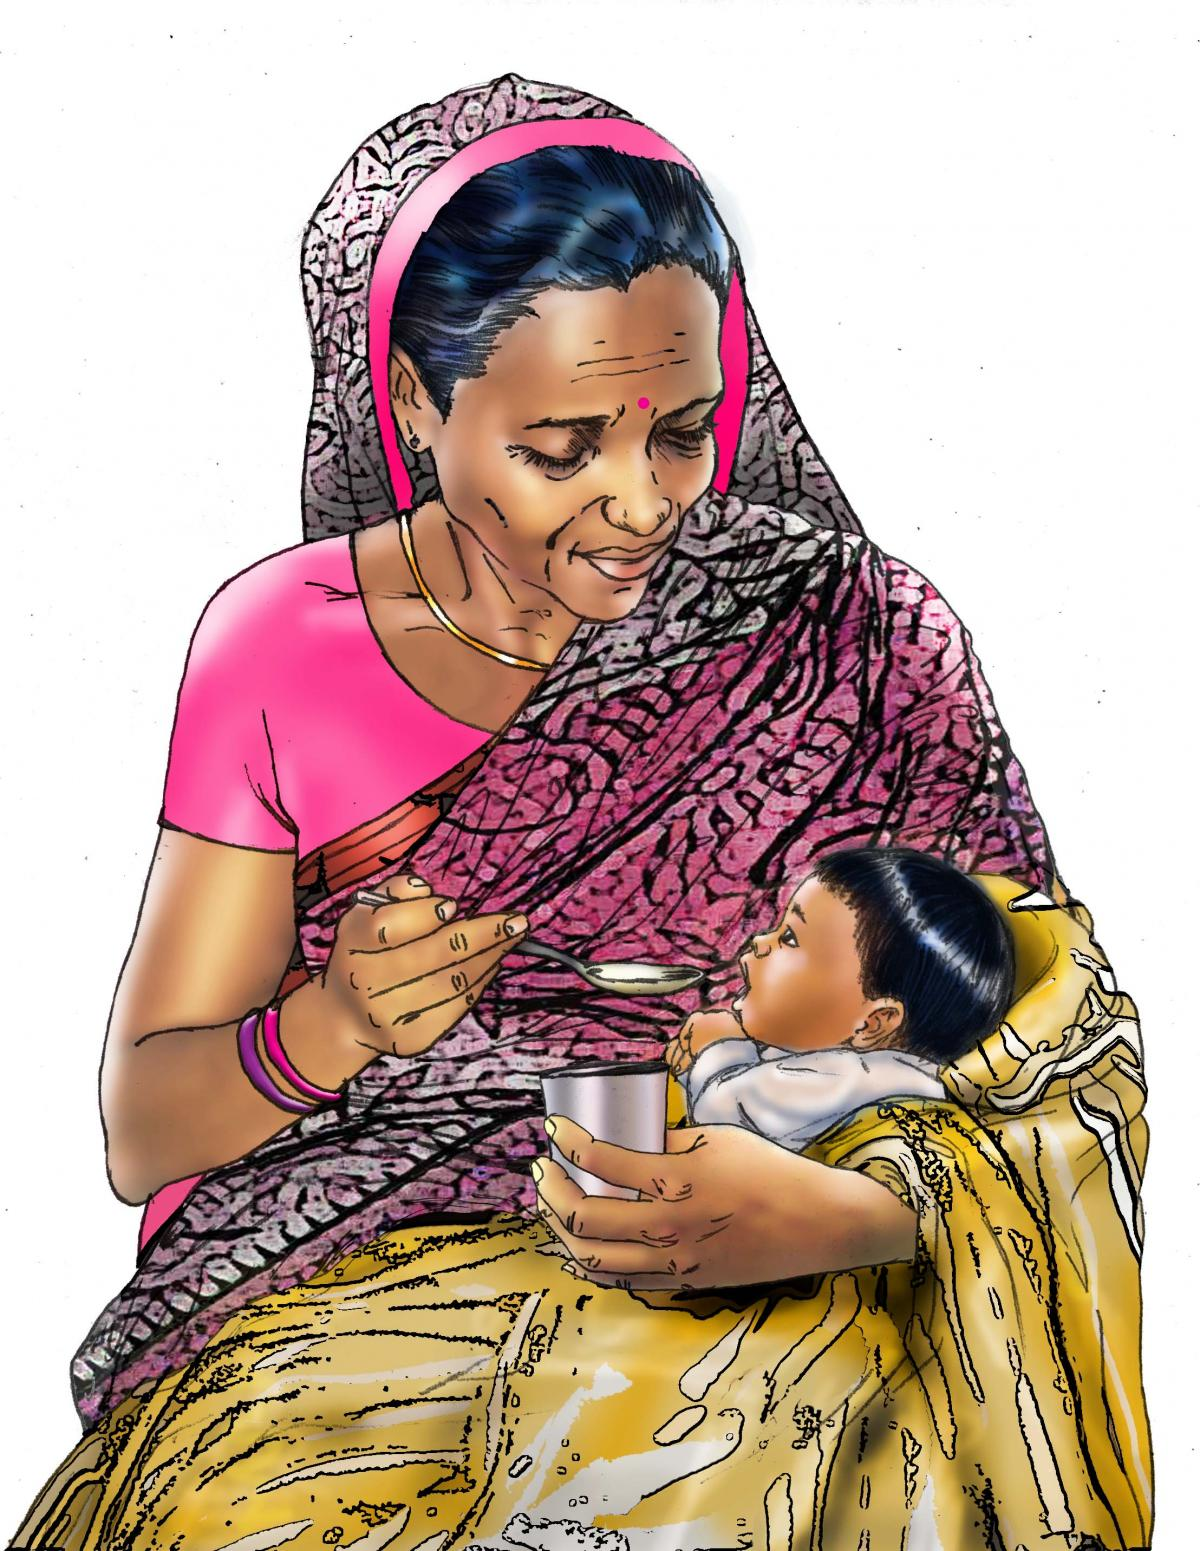 Cup feeding - Grandmother support for cup feeding - 03 - India